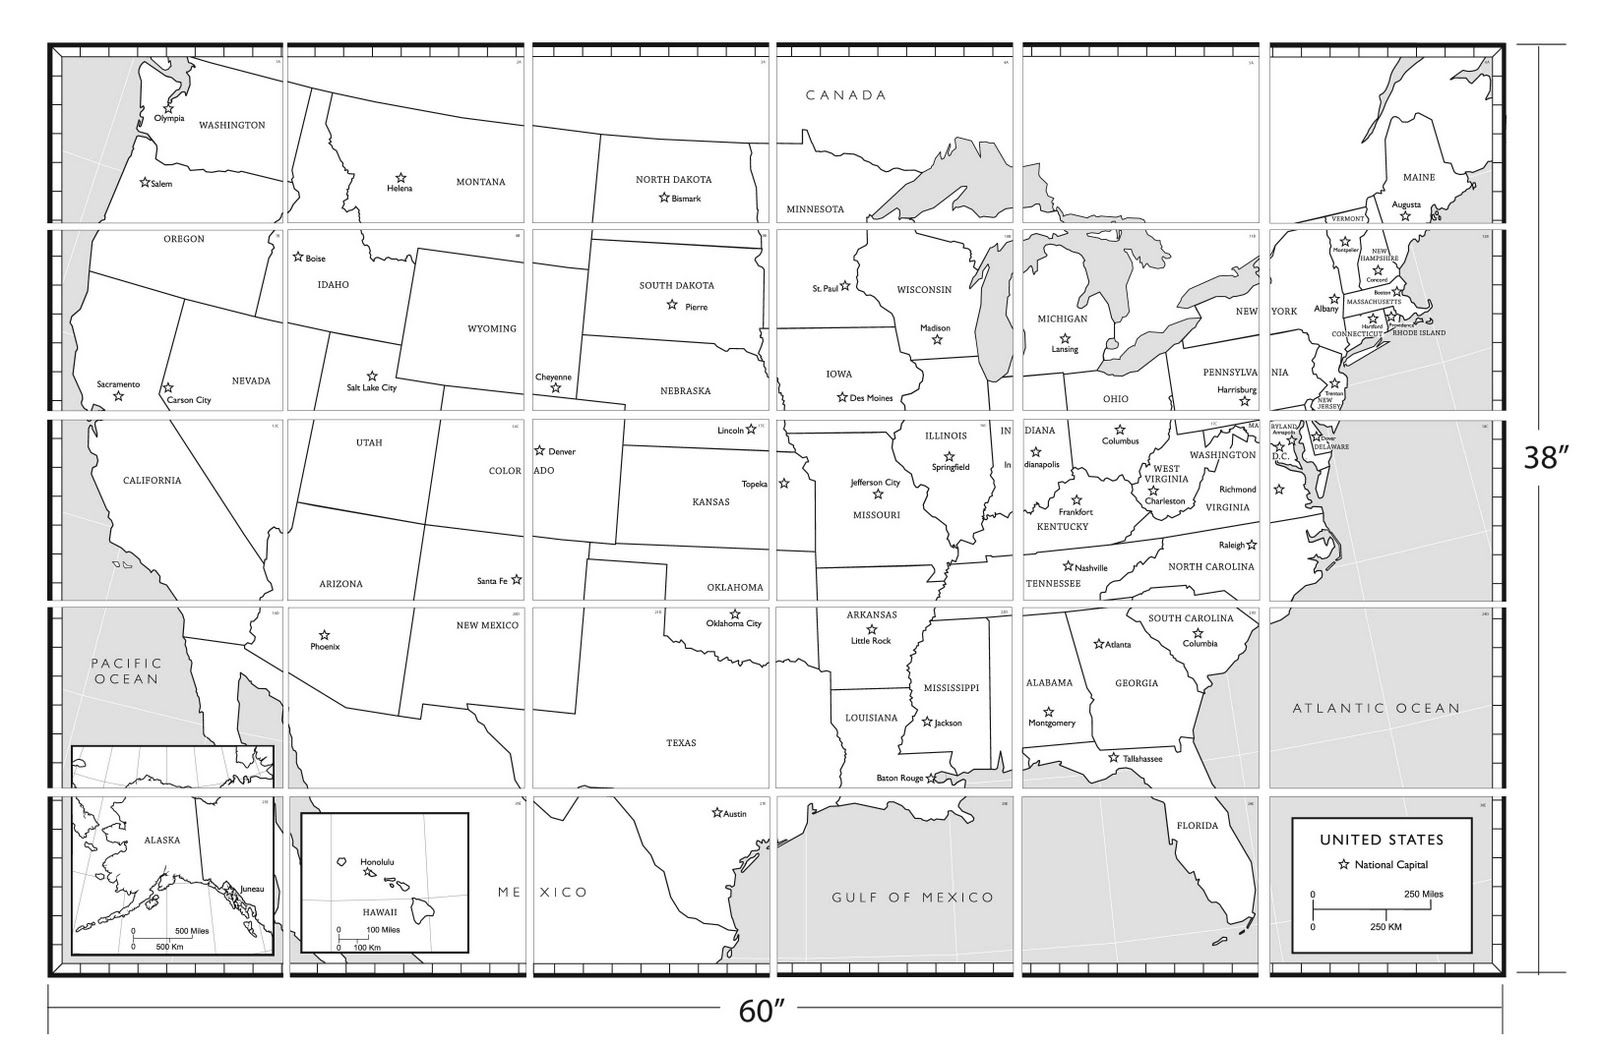 printable us map coloring page outline map of us states coloring pages printable us page printable coloring map